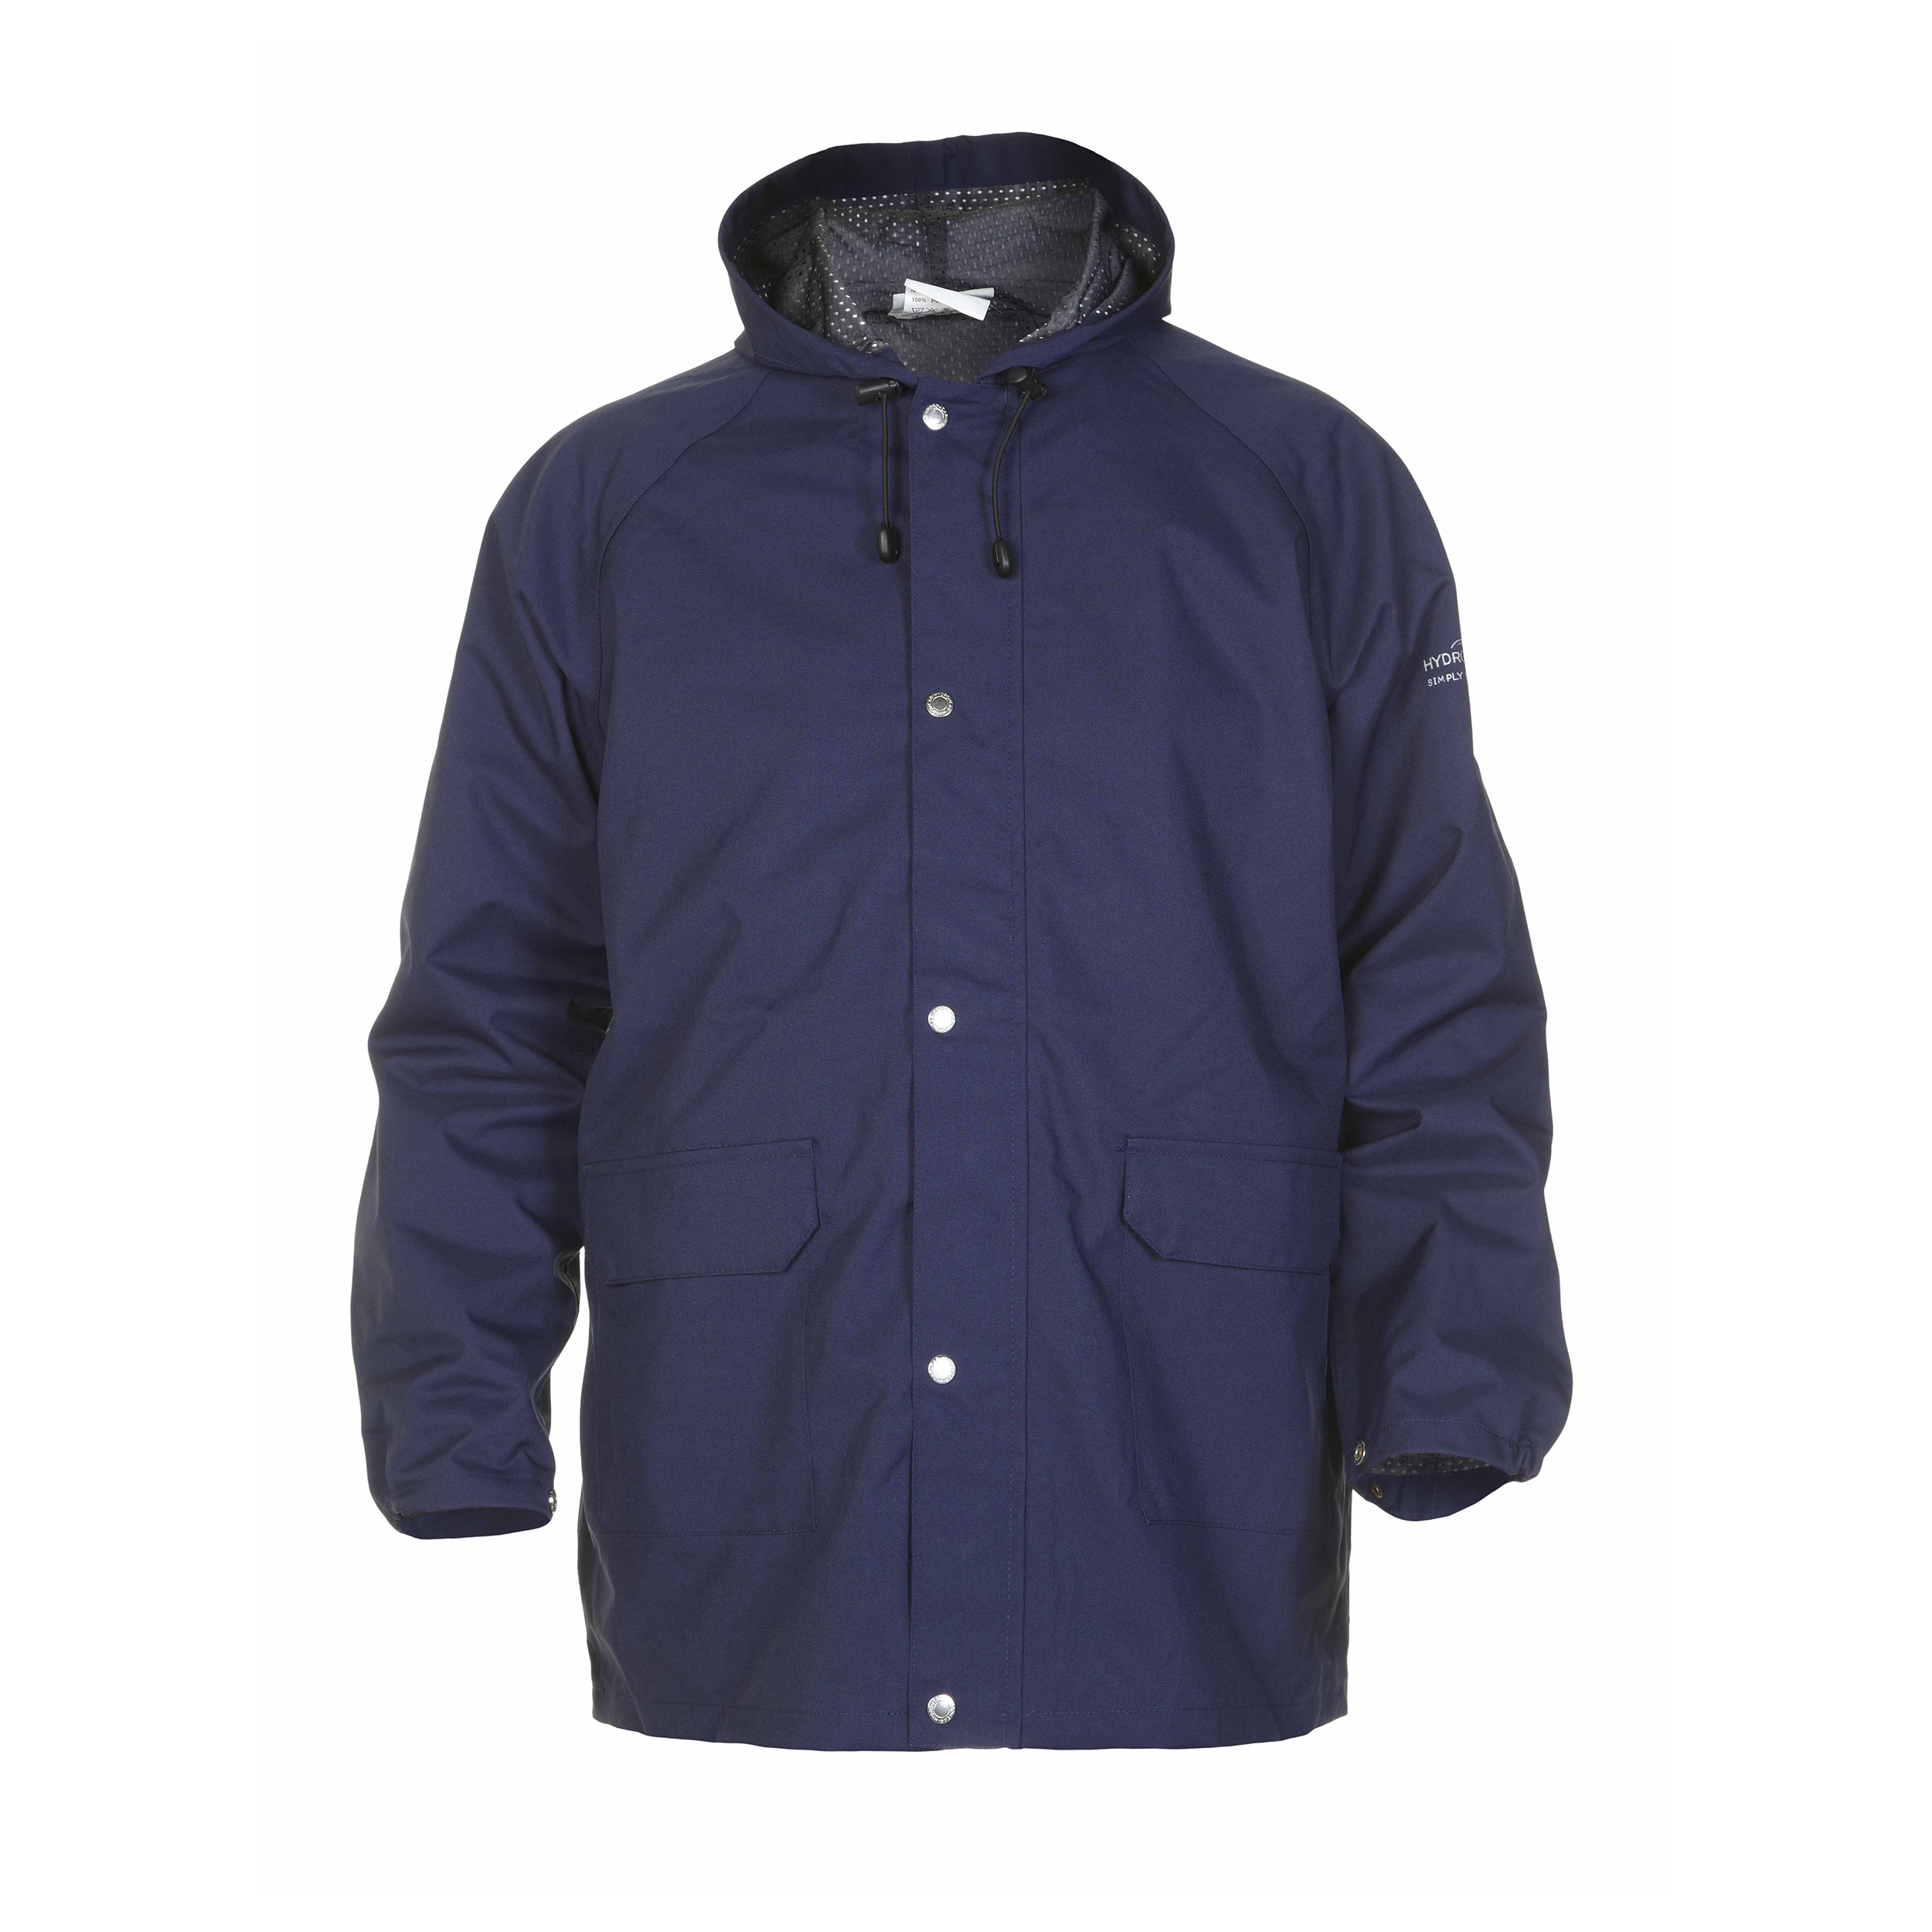 Limitless Hydrowear Ulft SNS Waterproof Jacket Polyester Large Navy Blue Ref HYD072400NL *Up to 3 Day Leadtime*